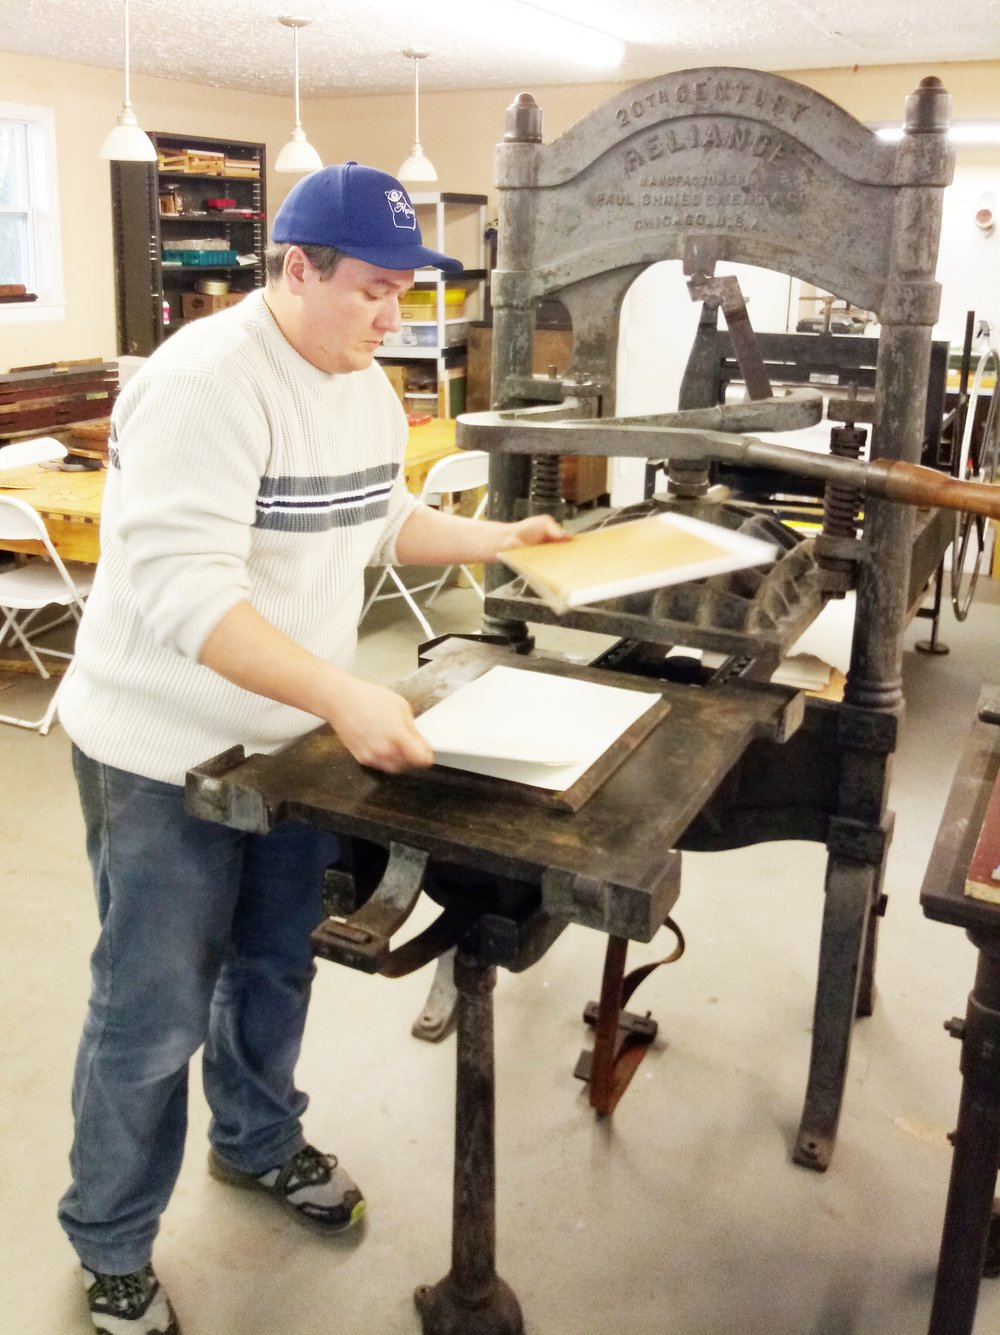 Executive Director and Master Printer, Nuno Nunez checks the print